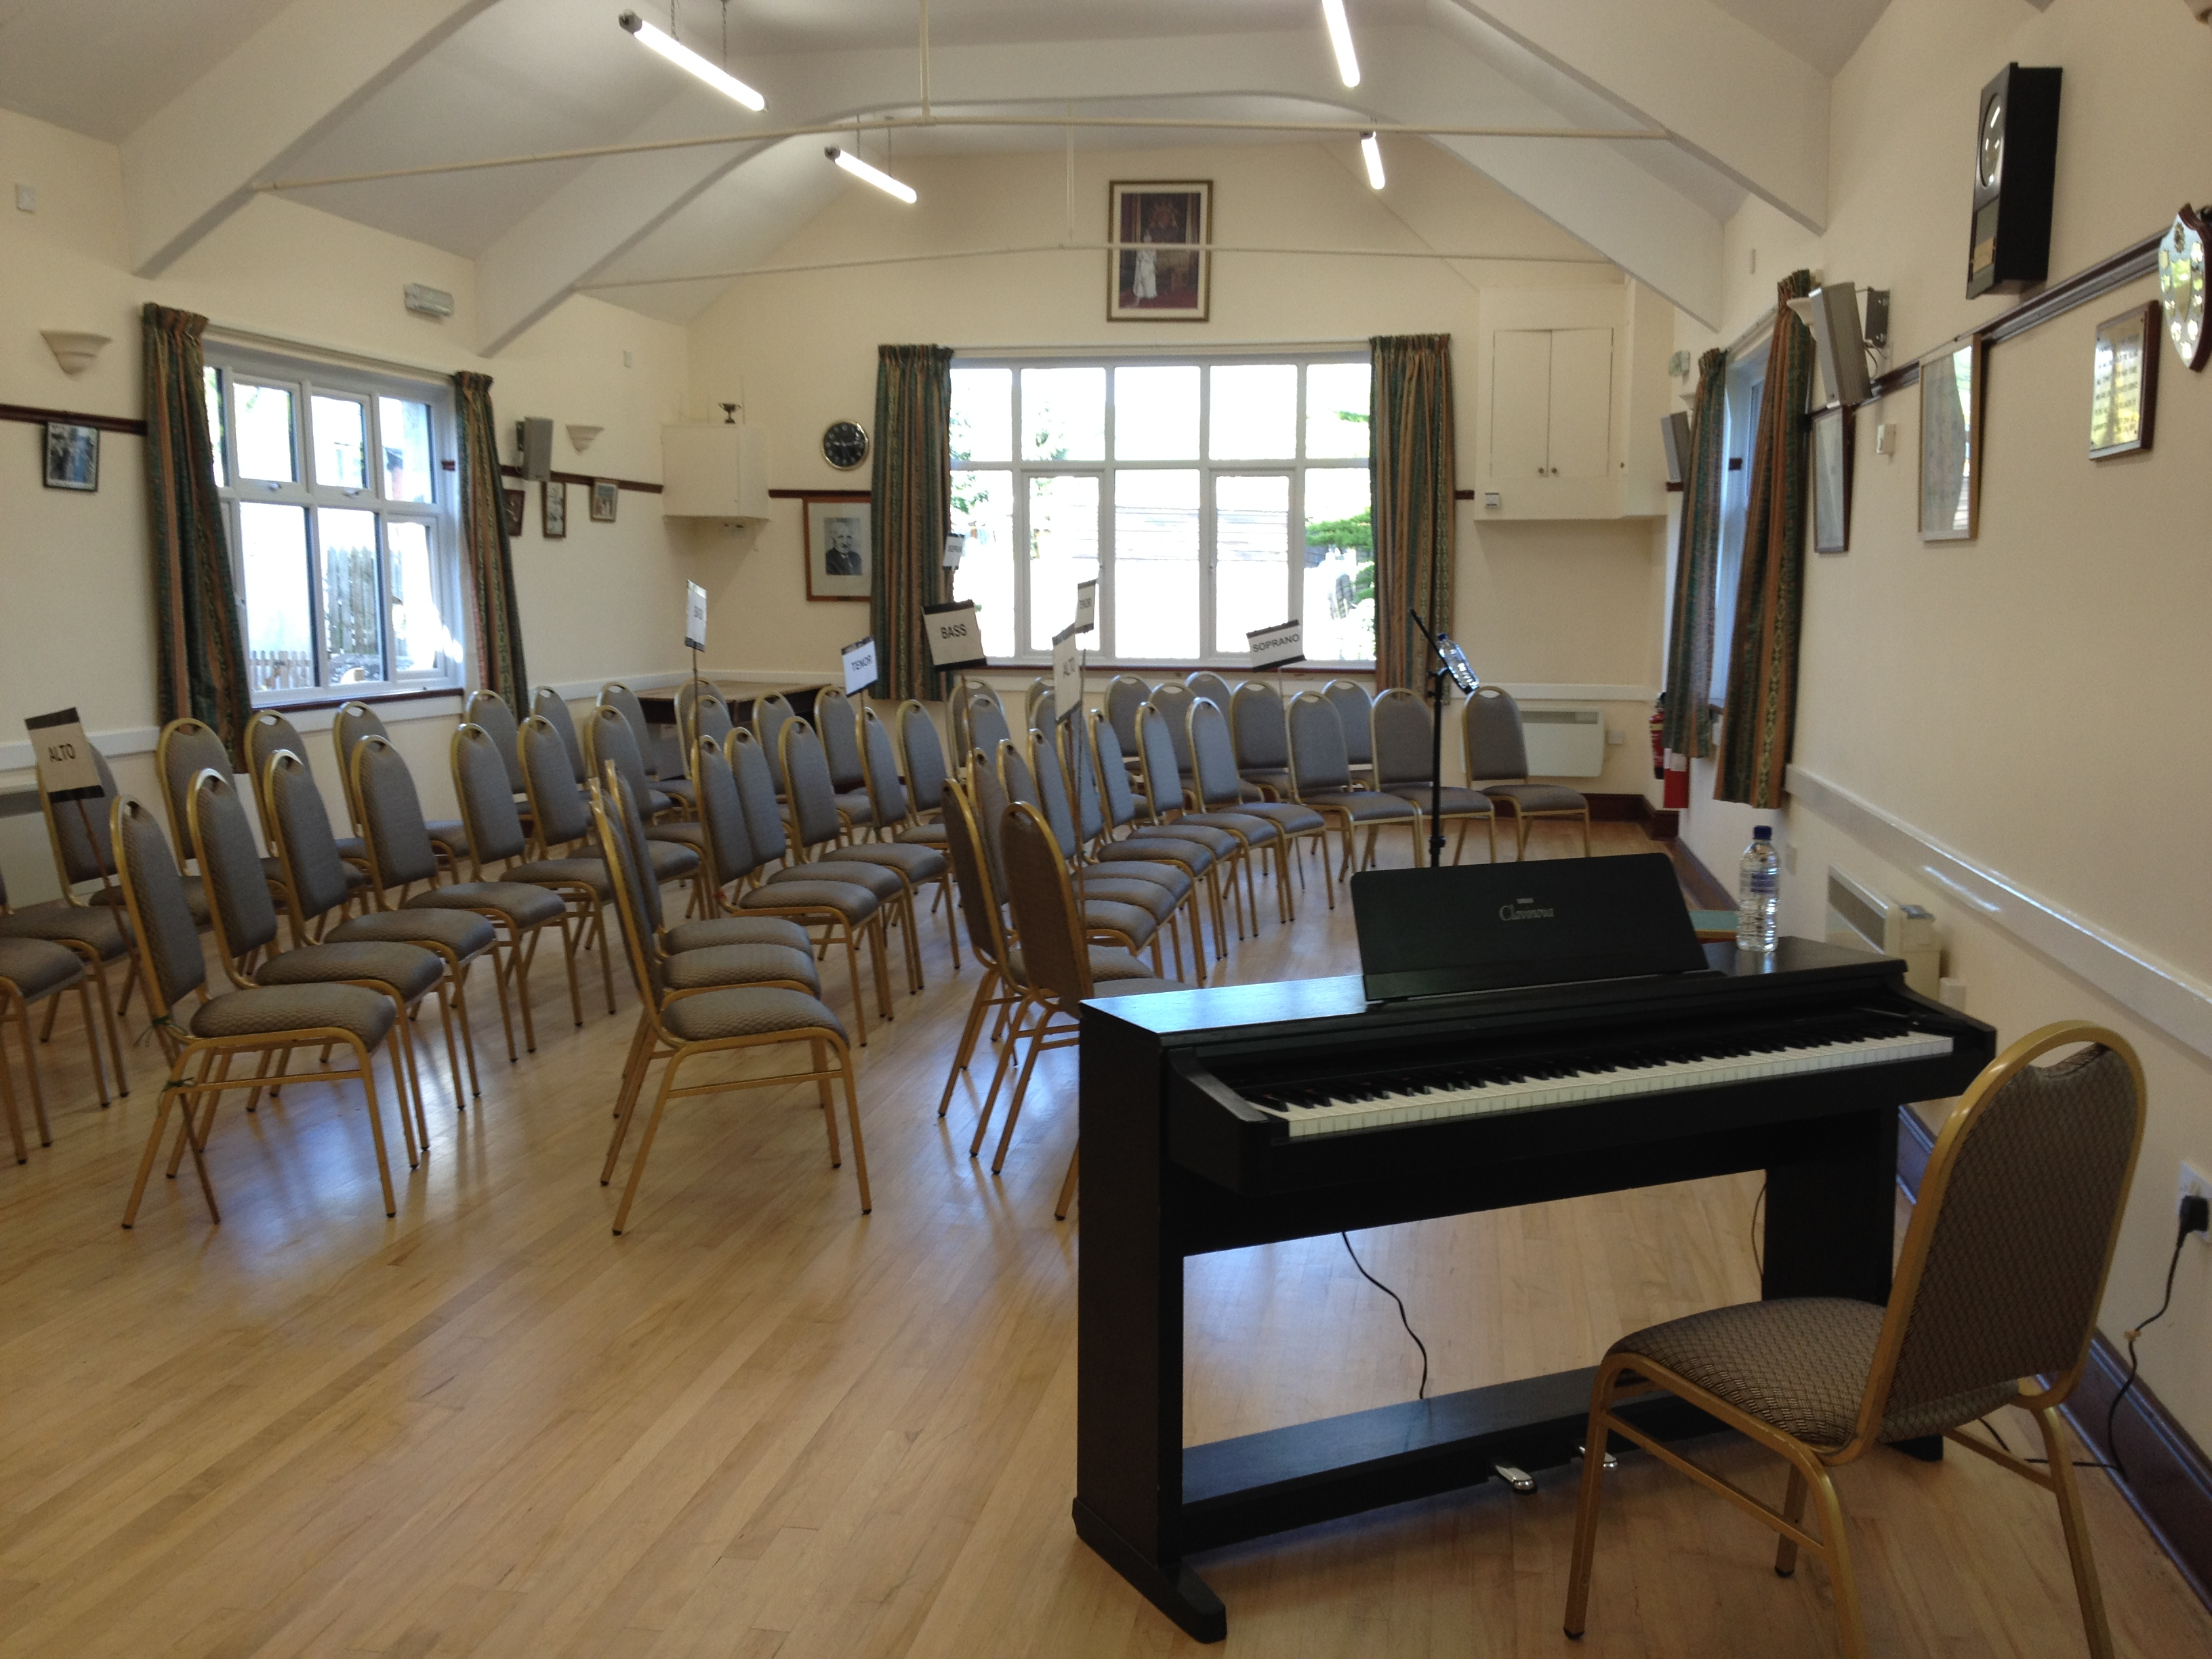 The village hall awaits... at the May 2018 Workshop.